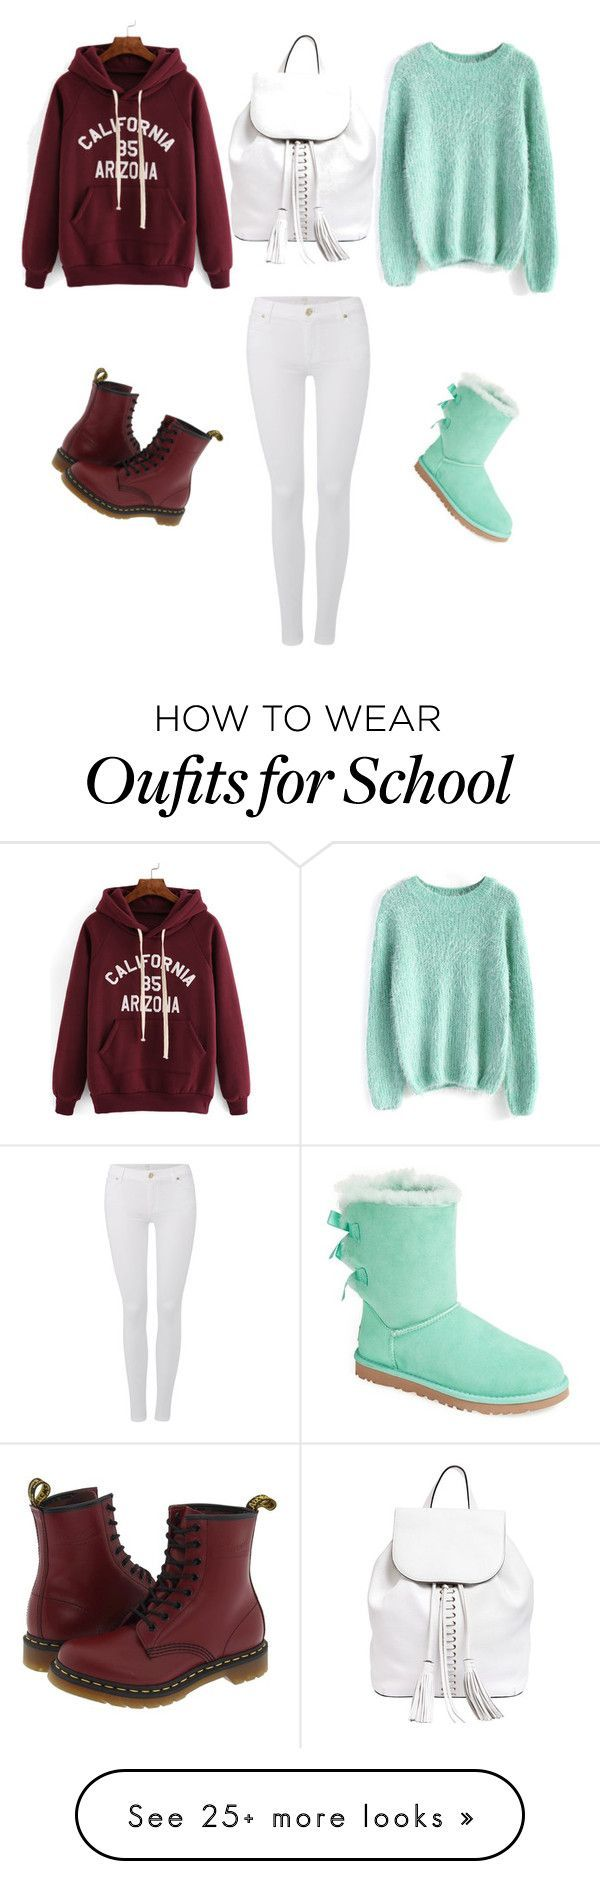 """""""School"""" by donnellamarcelli on Polyvore featuring Chicwish, 7 For All Mankind, UGG Australia, Dr. Martens, Rebecca Minkoff, women's clothing, women's fashion, women, female and woman"""